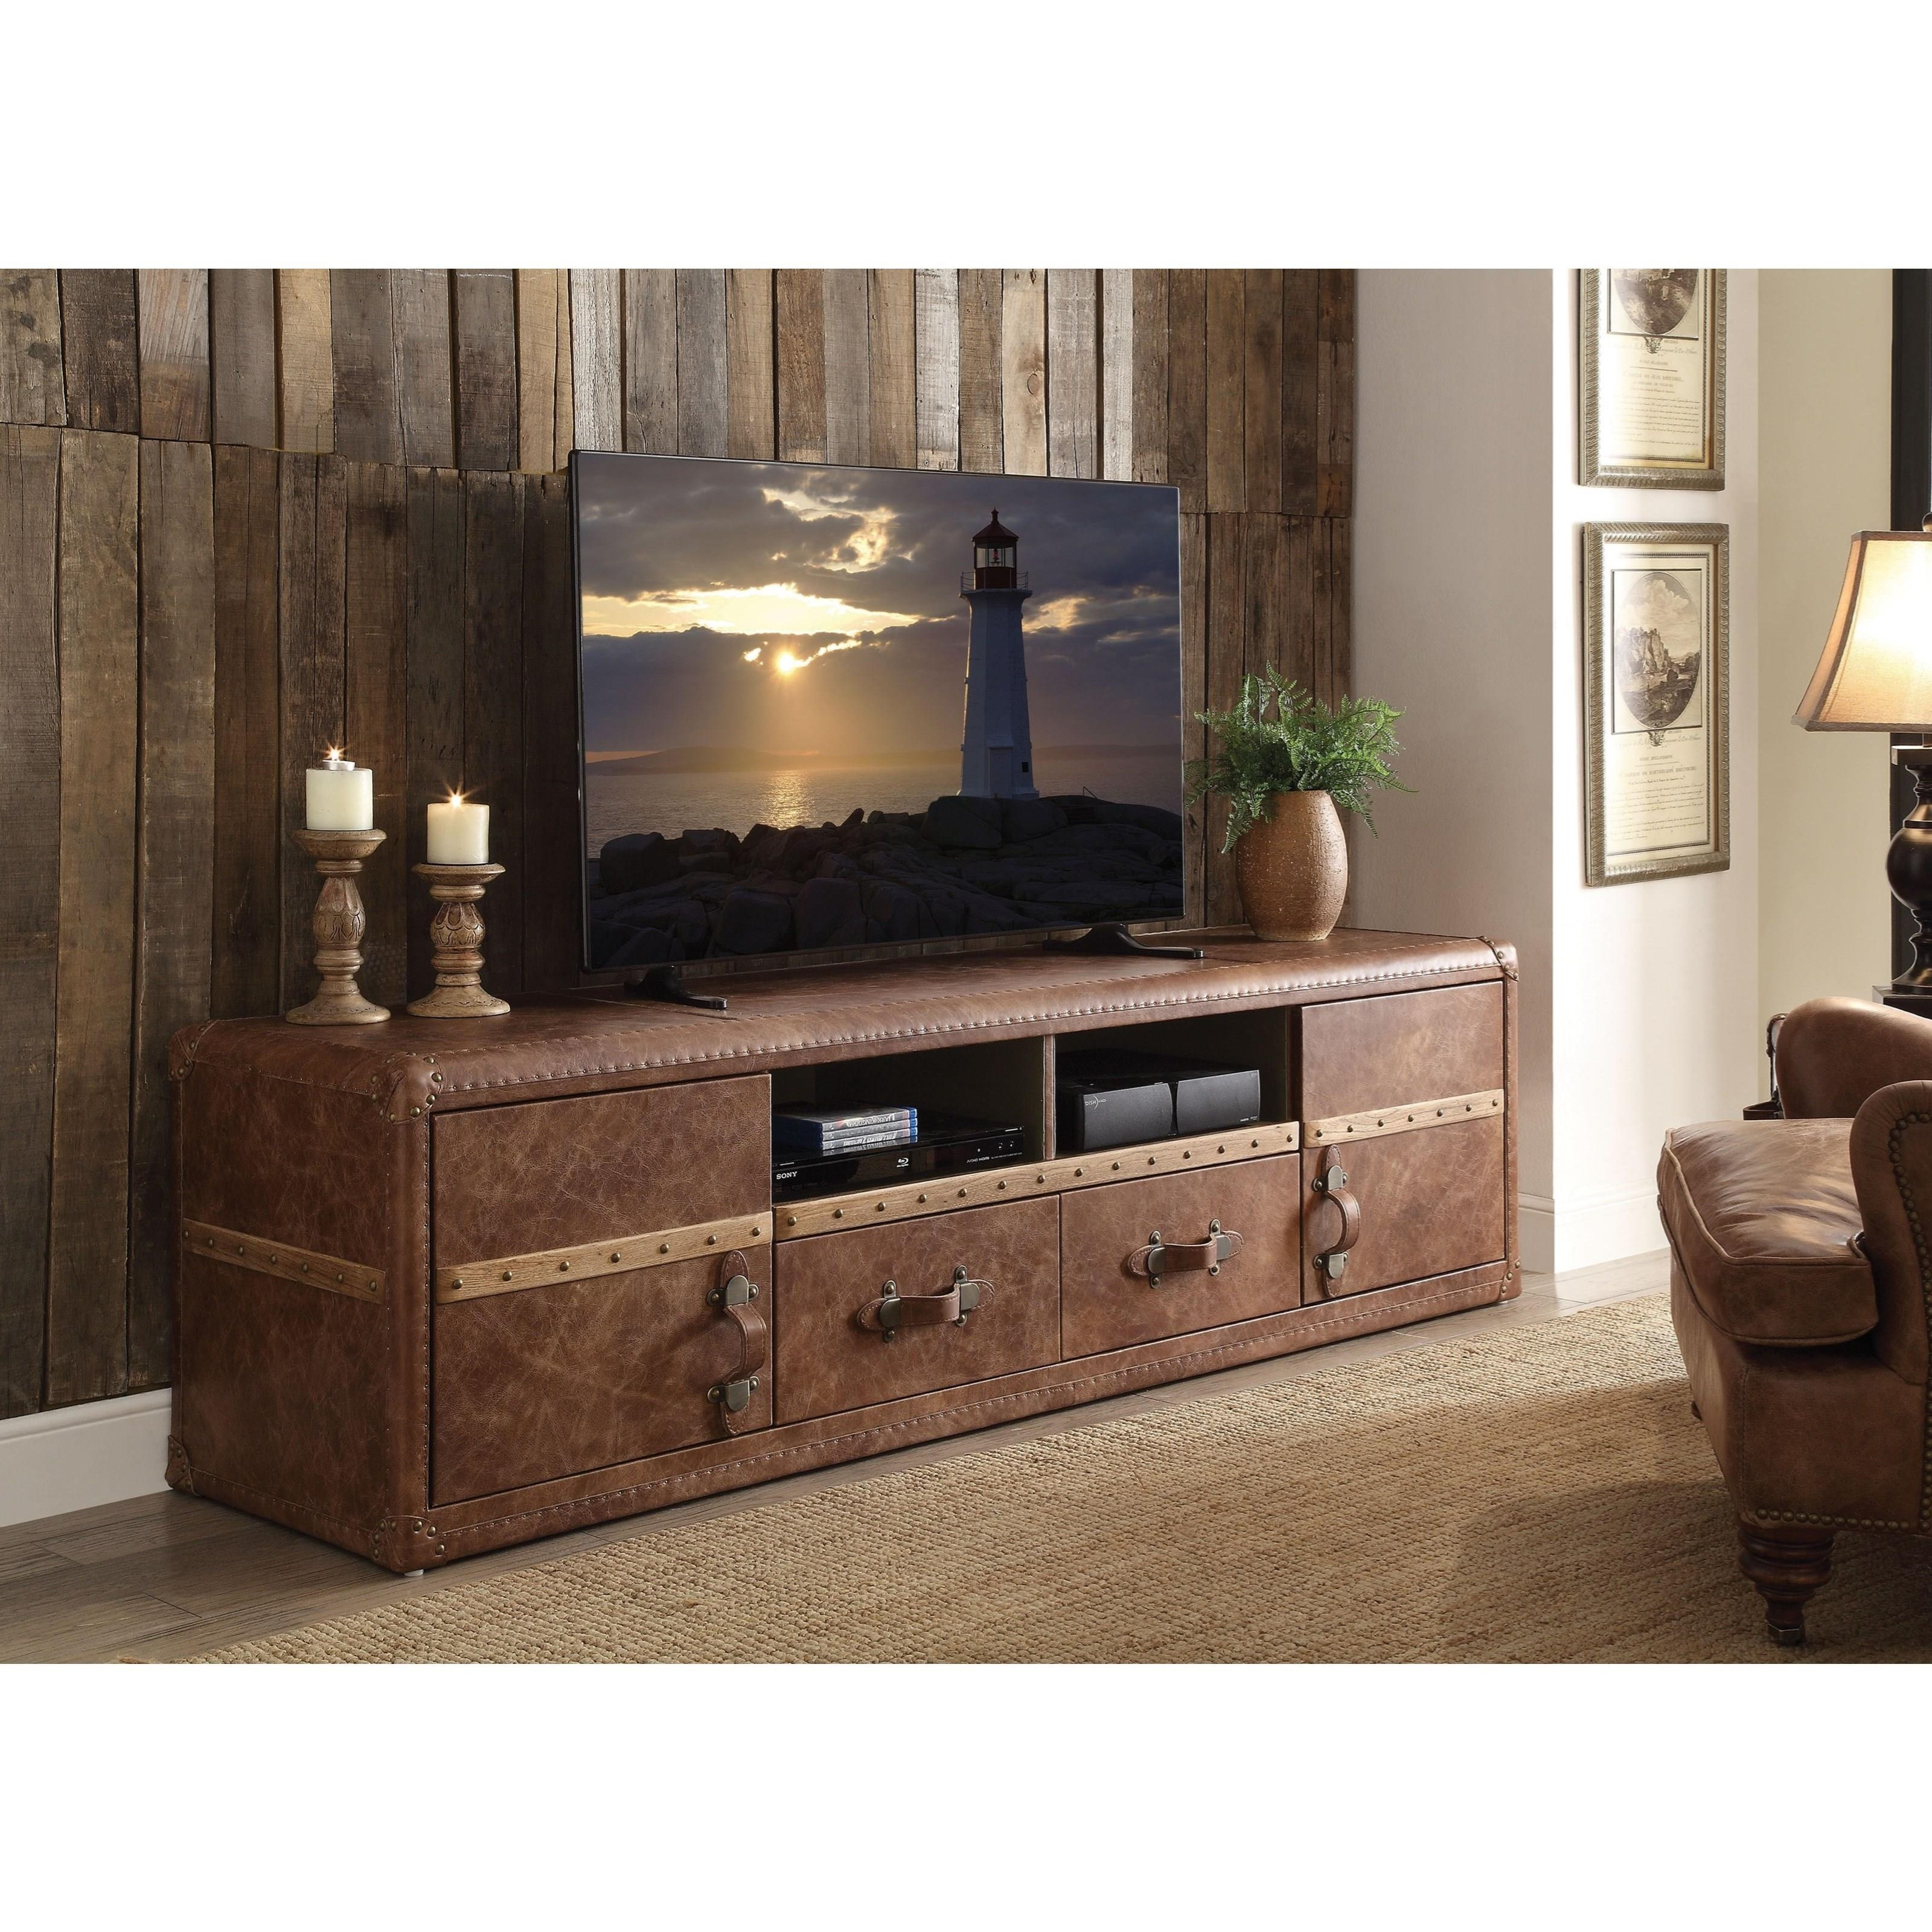 Aberdeen TV Stand by Acme Furniture at Dream Home Interiors